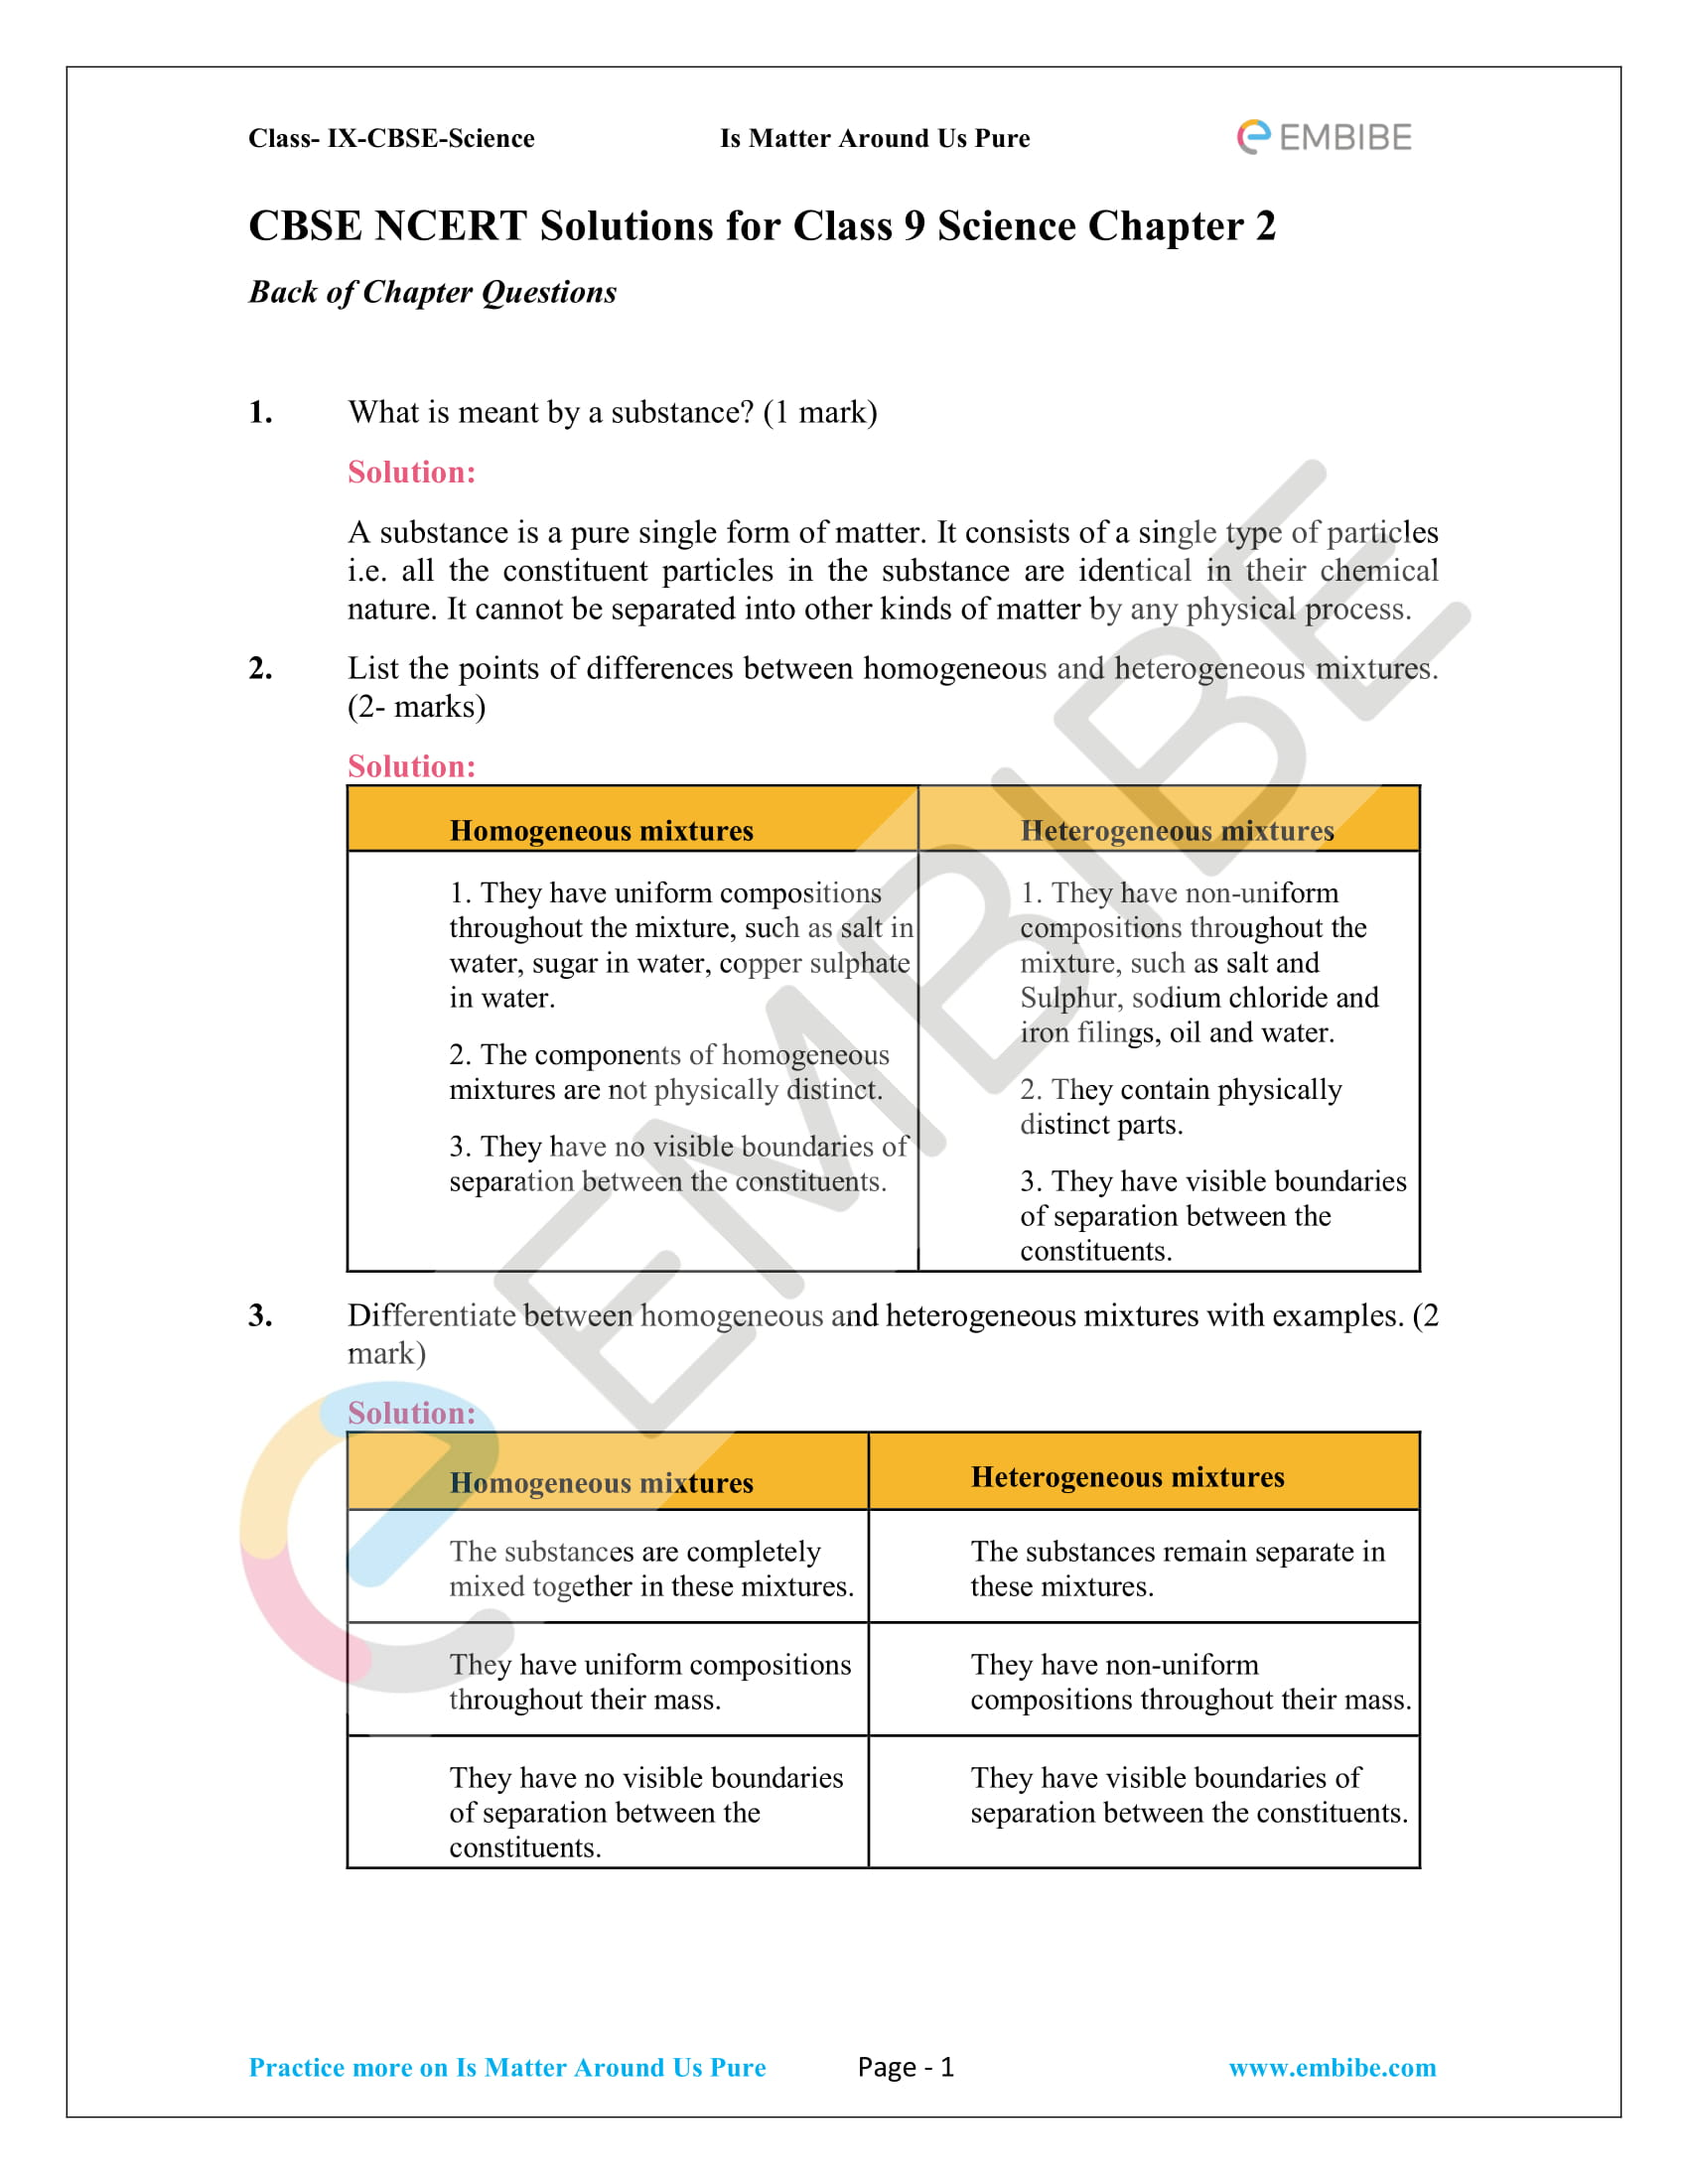 CBSE NCERT Solutions For Class 9 Science Chapter 2: Is Matter Around